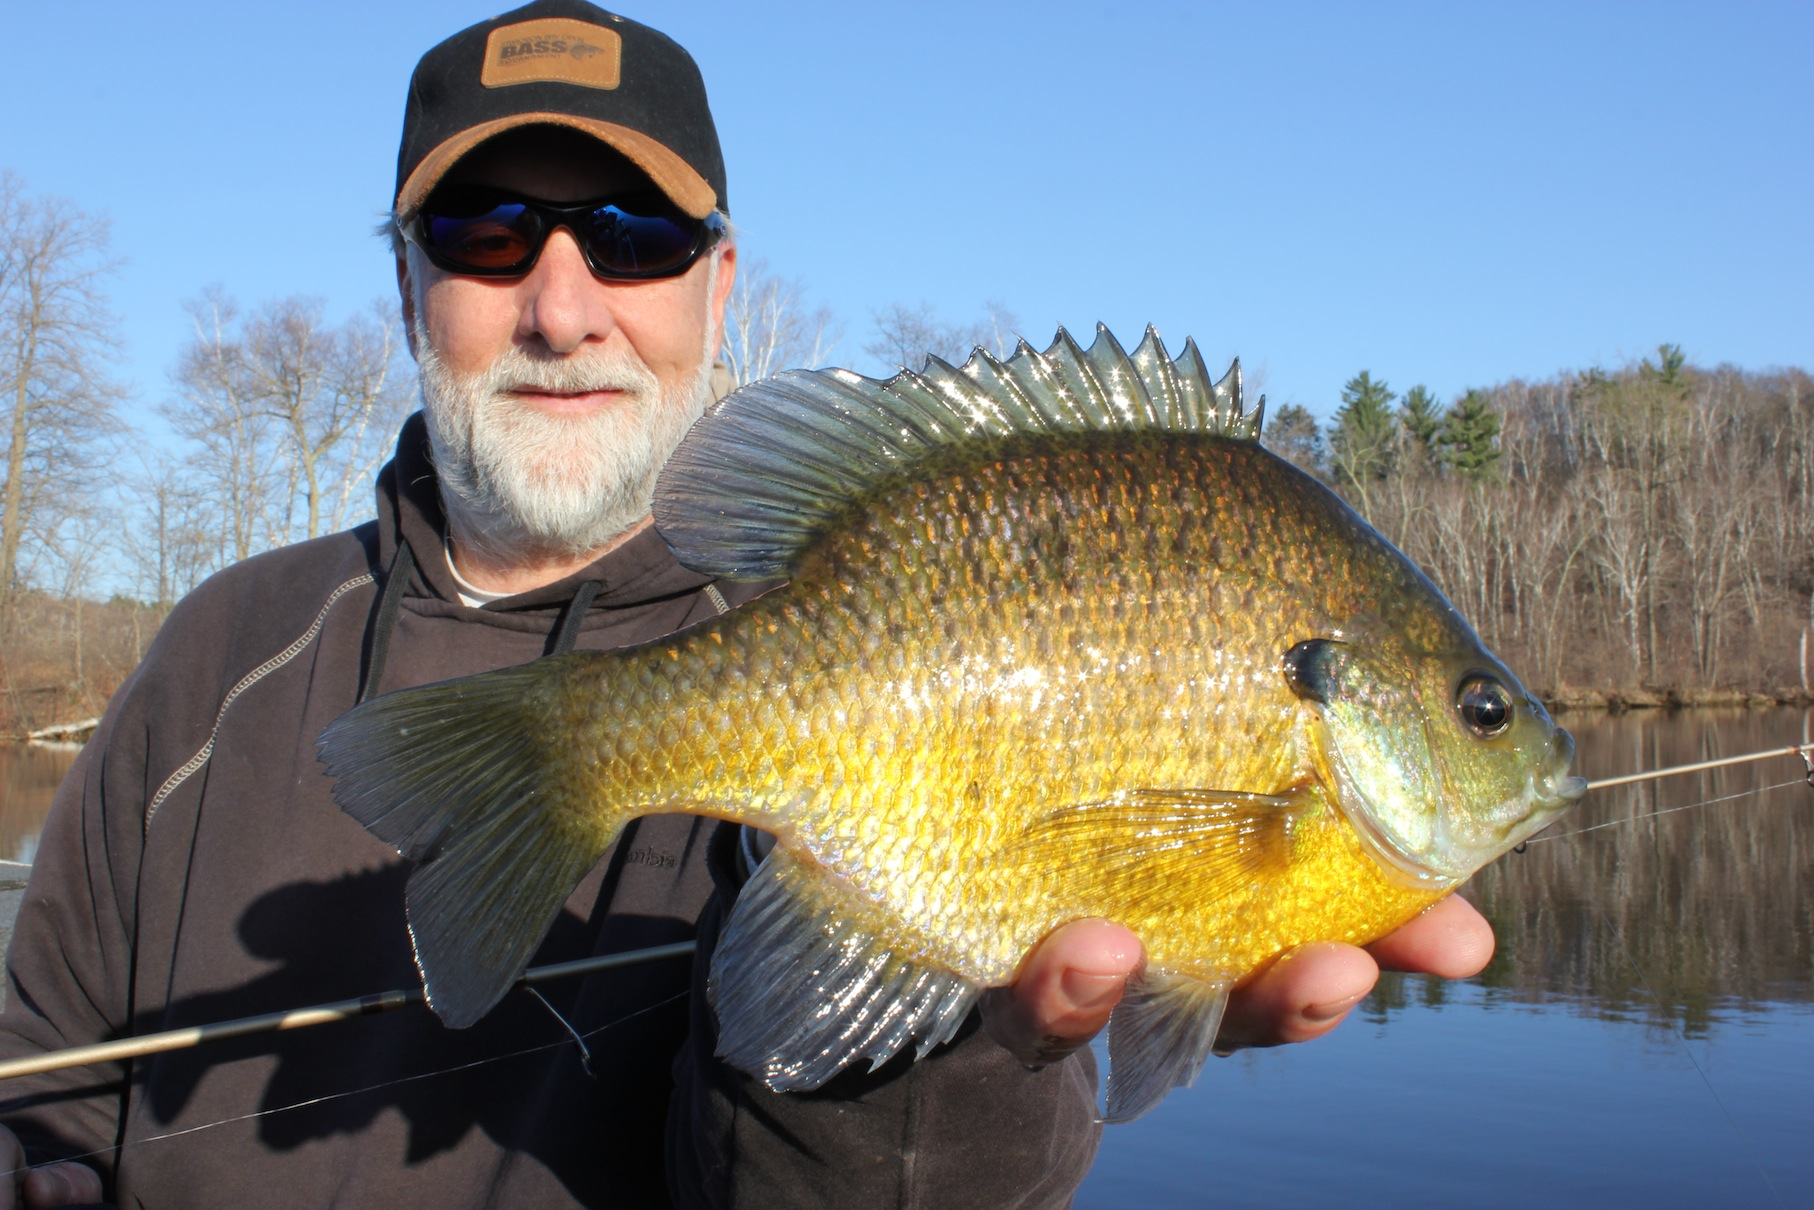 Bluegills are (finally) prowling through shallow water in the small, local lakes I haunt in